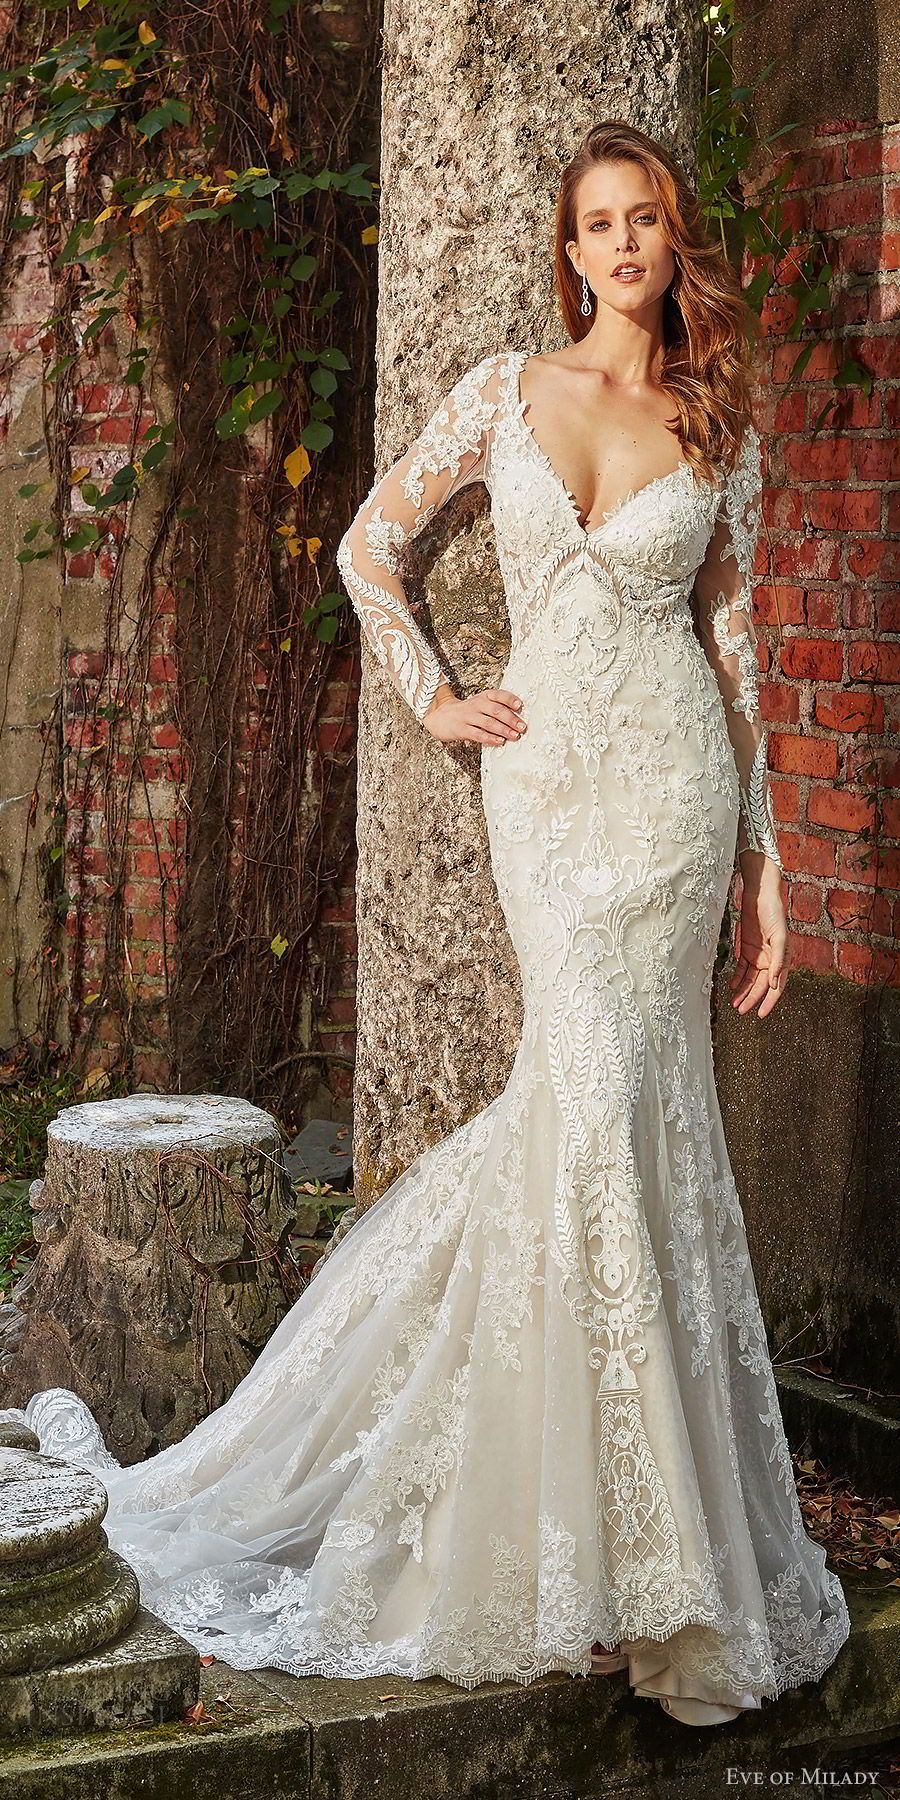 Eve of milady boutique spring wedding dresses wedding